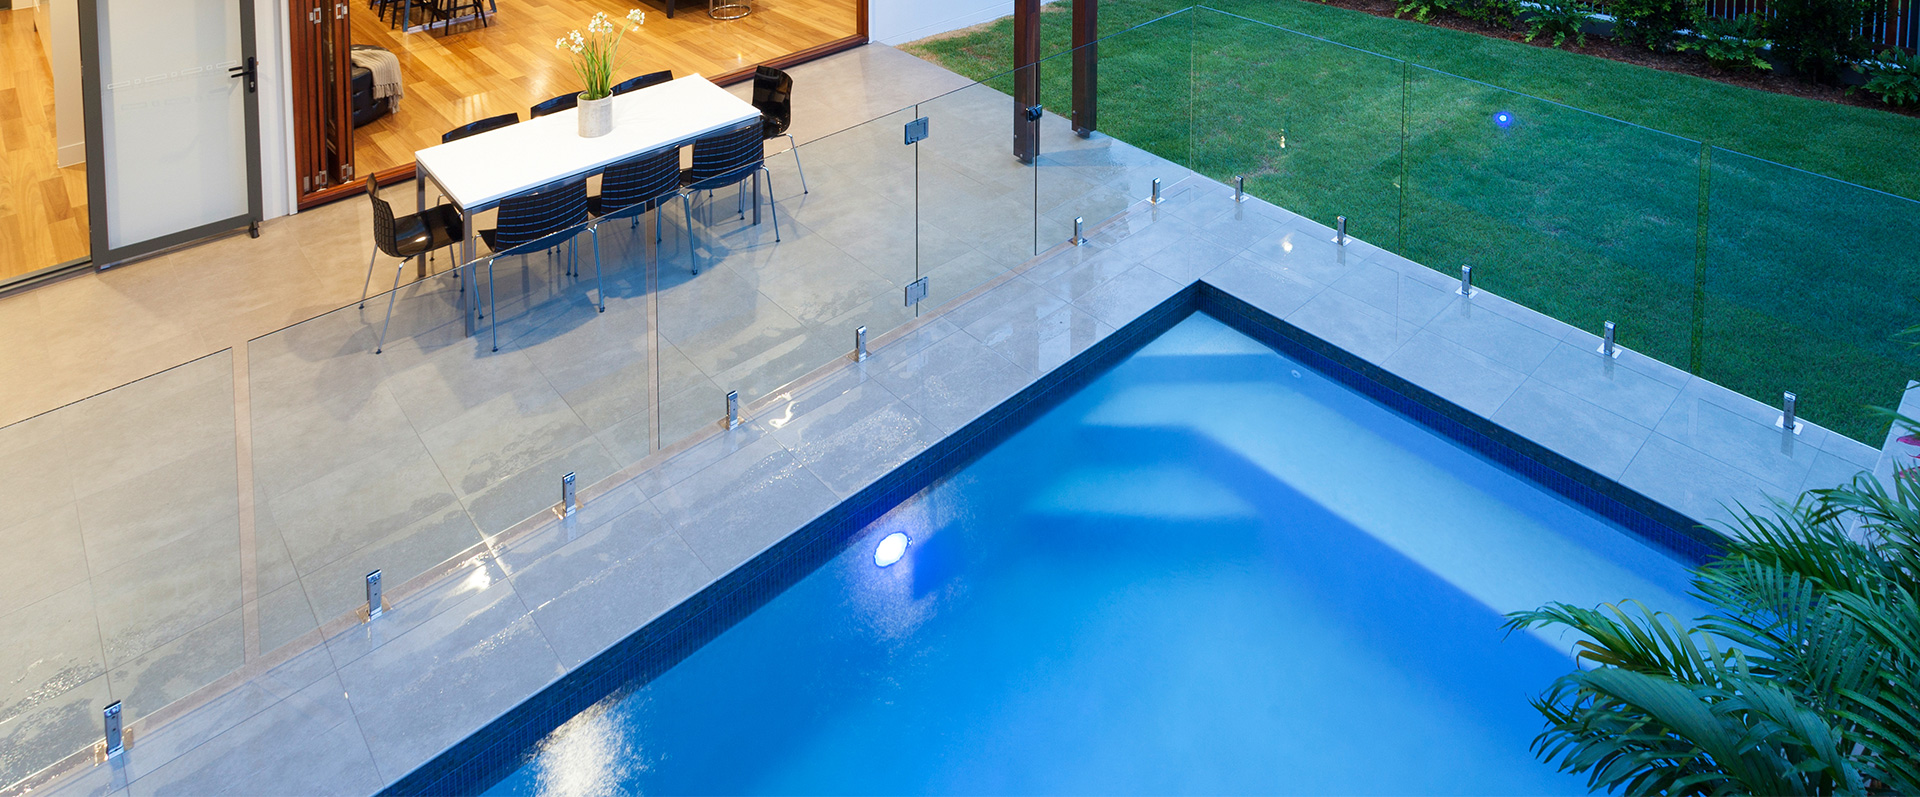 call today for your free pool fence estimate - Pool Fence Installation